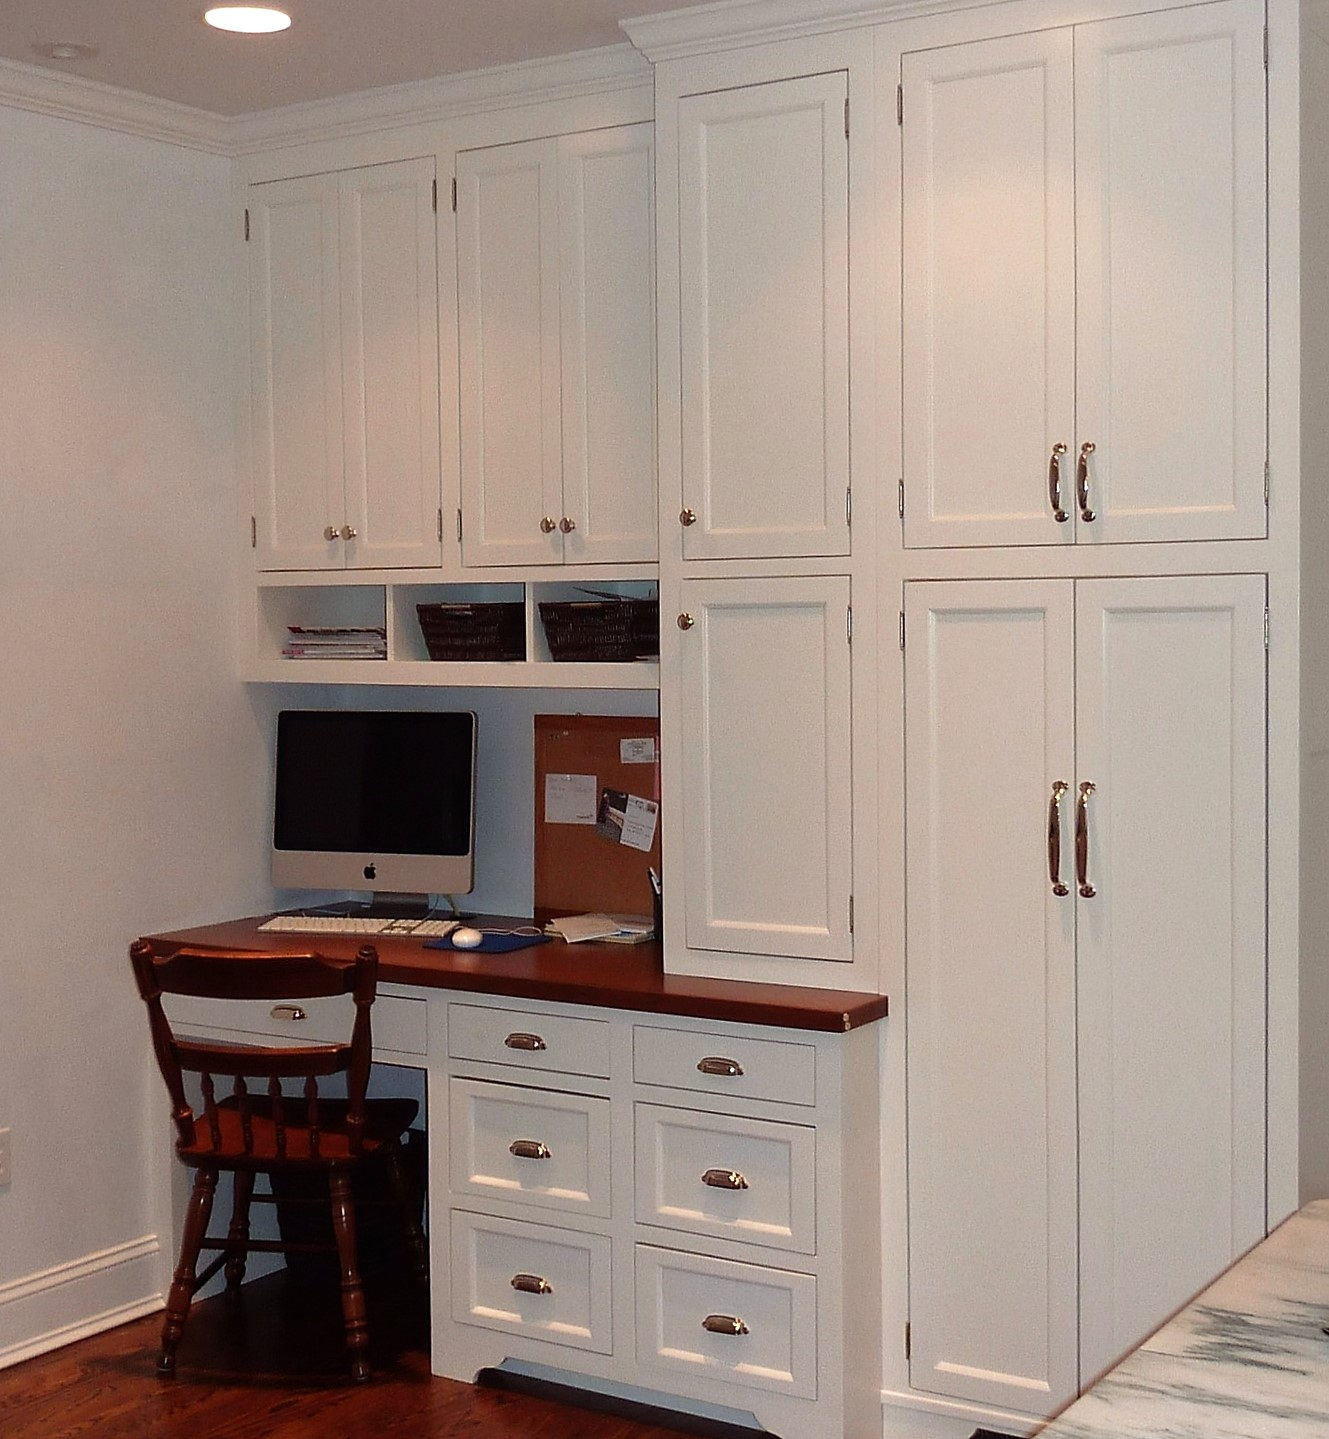 Jpg To Enlarge Image Built In Desk White Kitchen 2